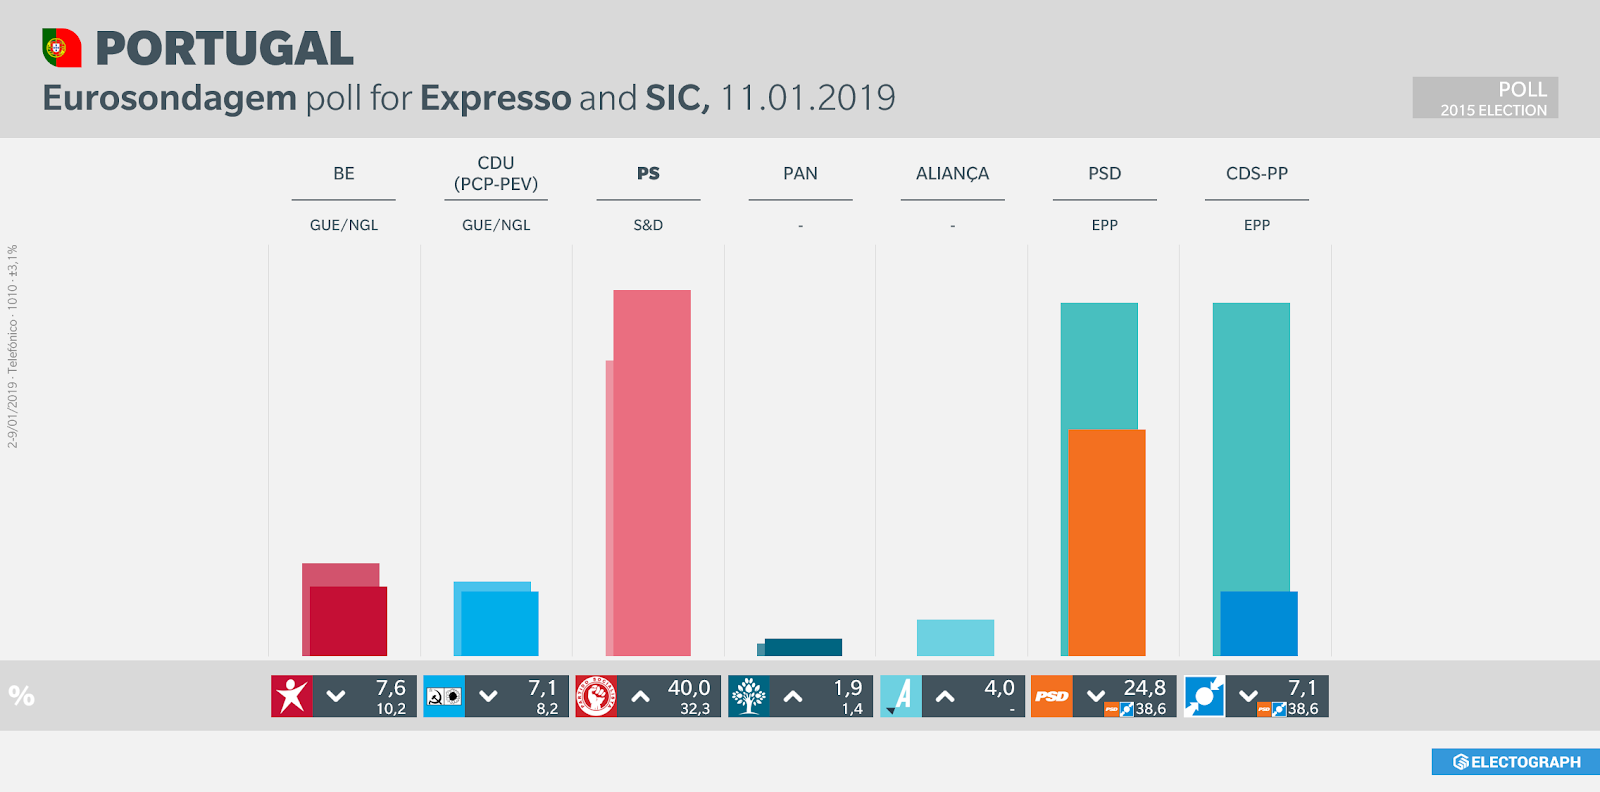 PORTUGAL: Eurosondagem poll for Expresso and SIC, 11 January 2019